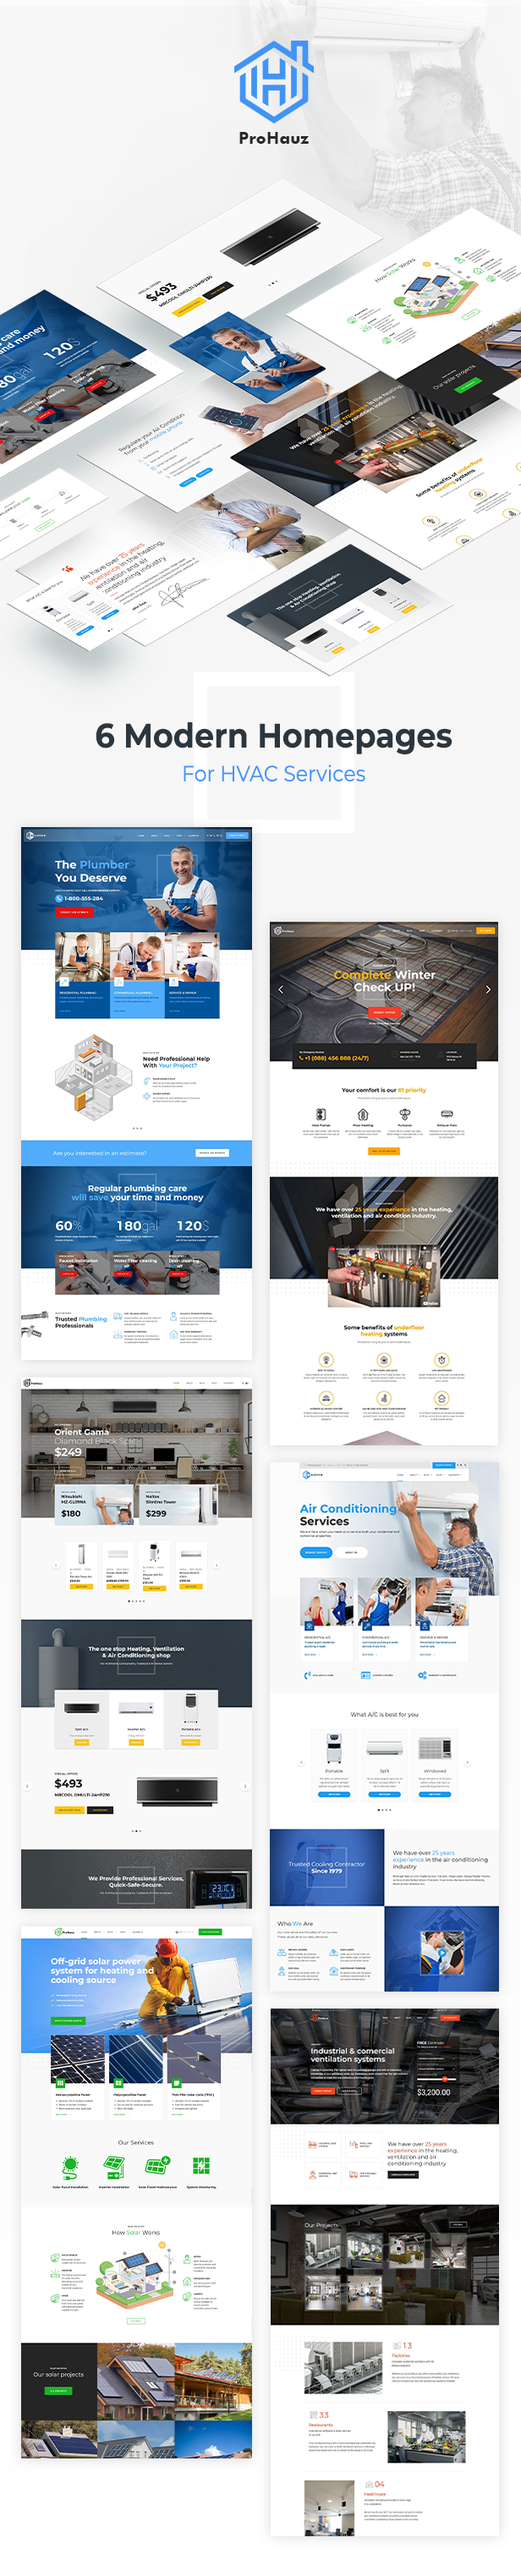 ProHauz – HVAC Services WordPress Theme - 3